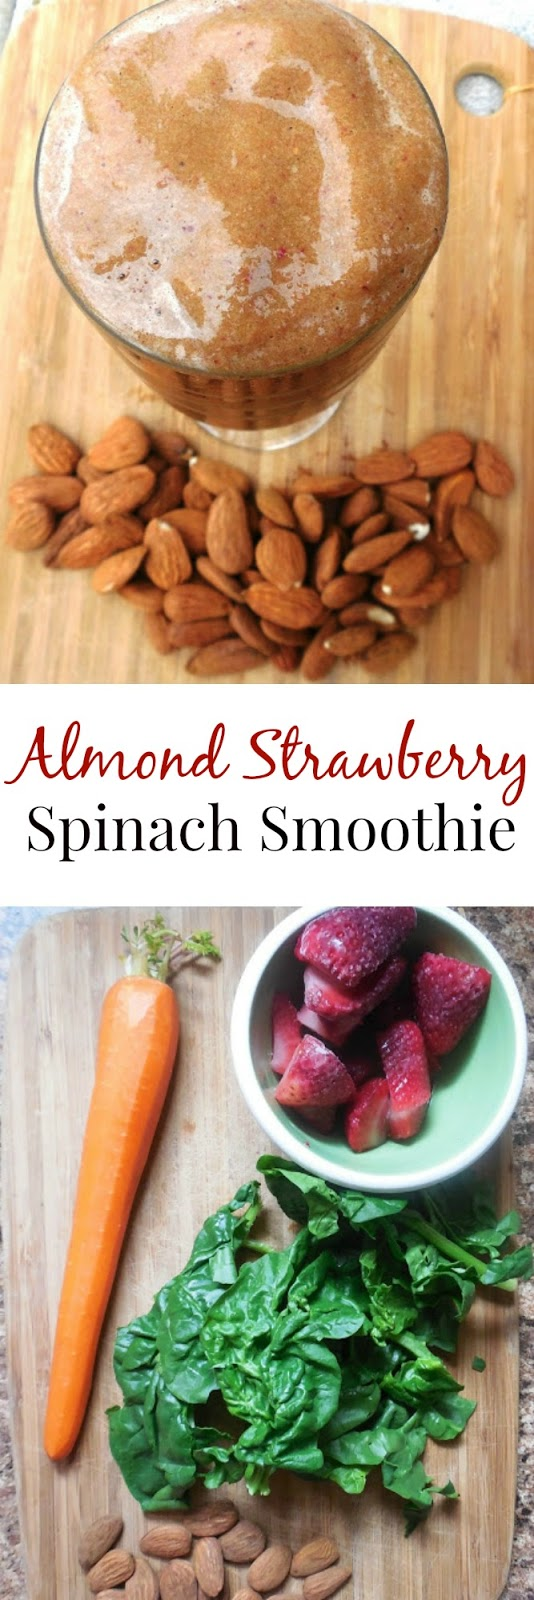 This Almond Strawberry Spinach Smoothie is a unique combination of ingredients that taste great together! Ready in 3 minutes or less. www.nutritionistreviews.com